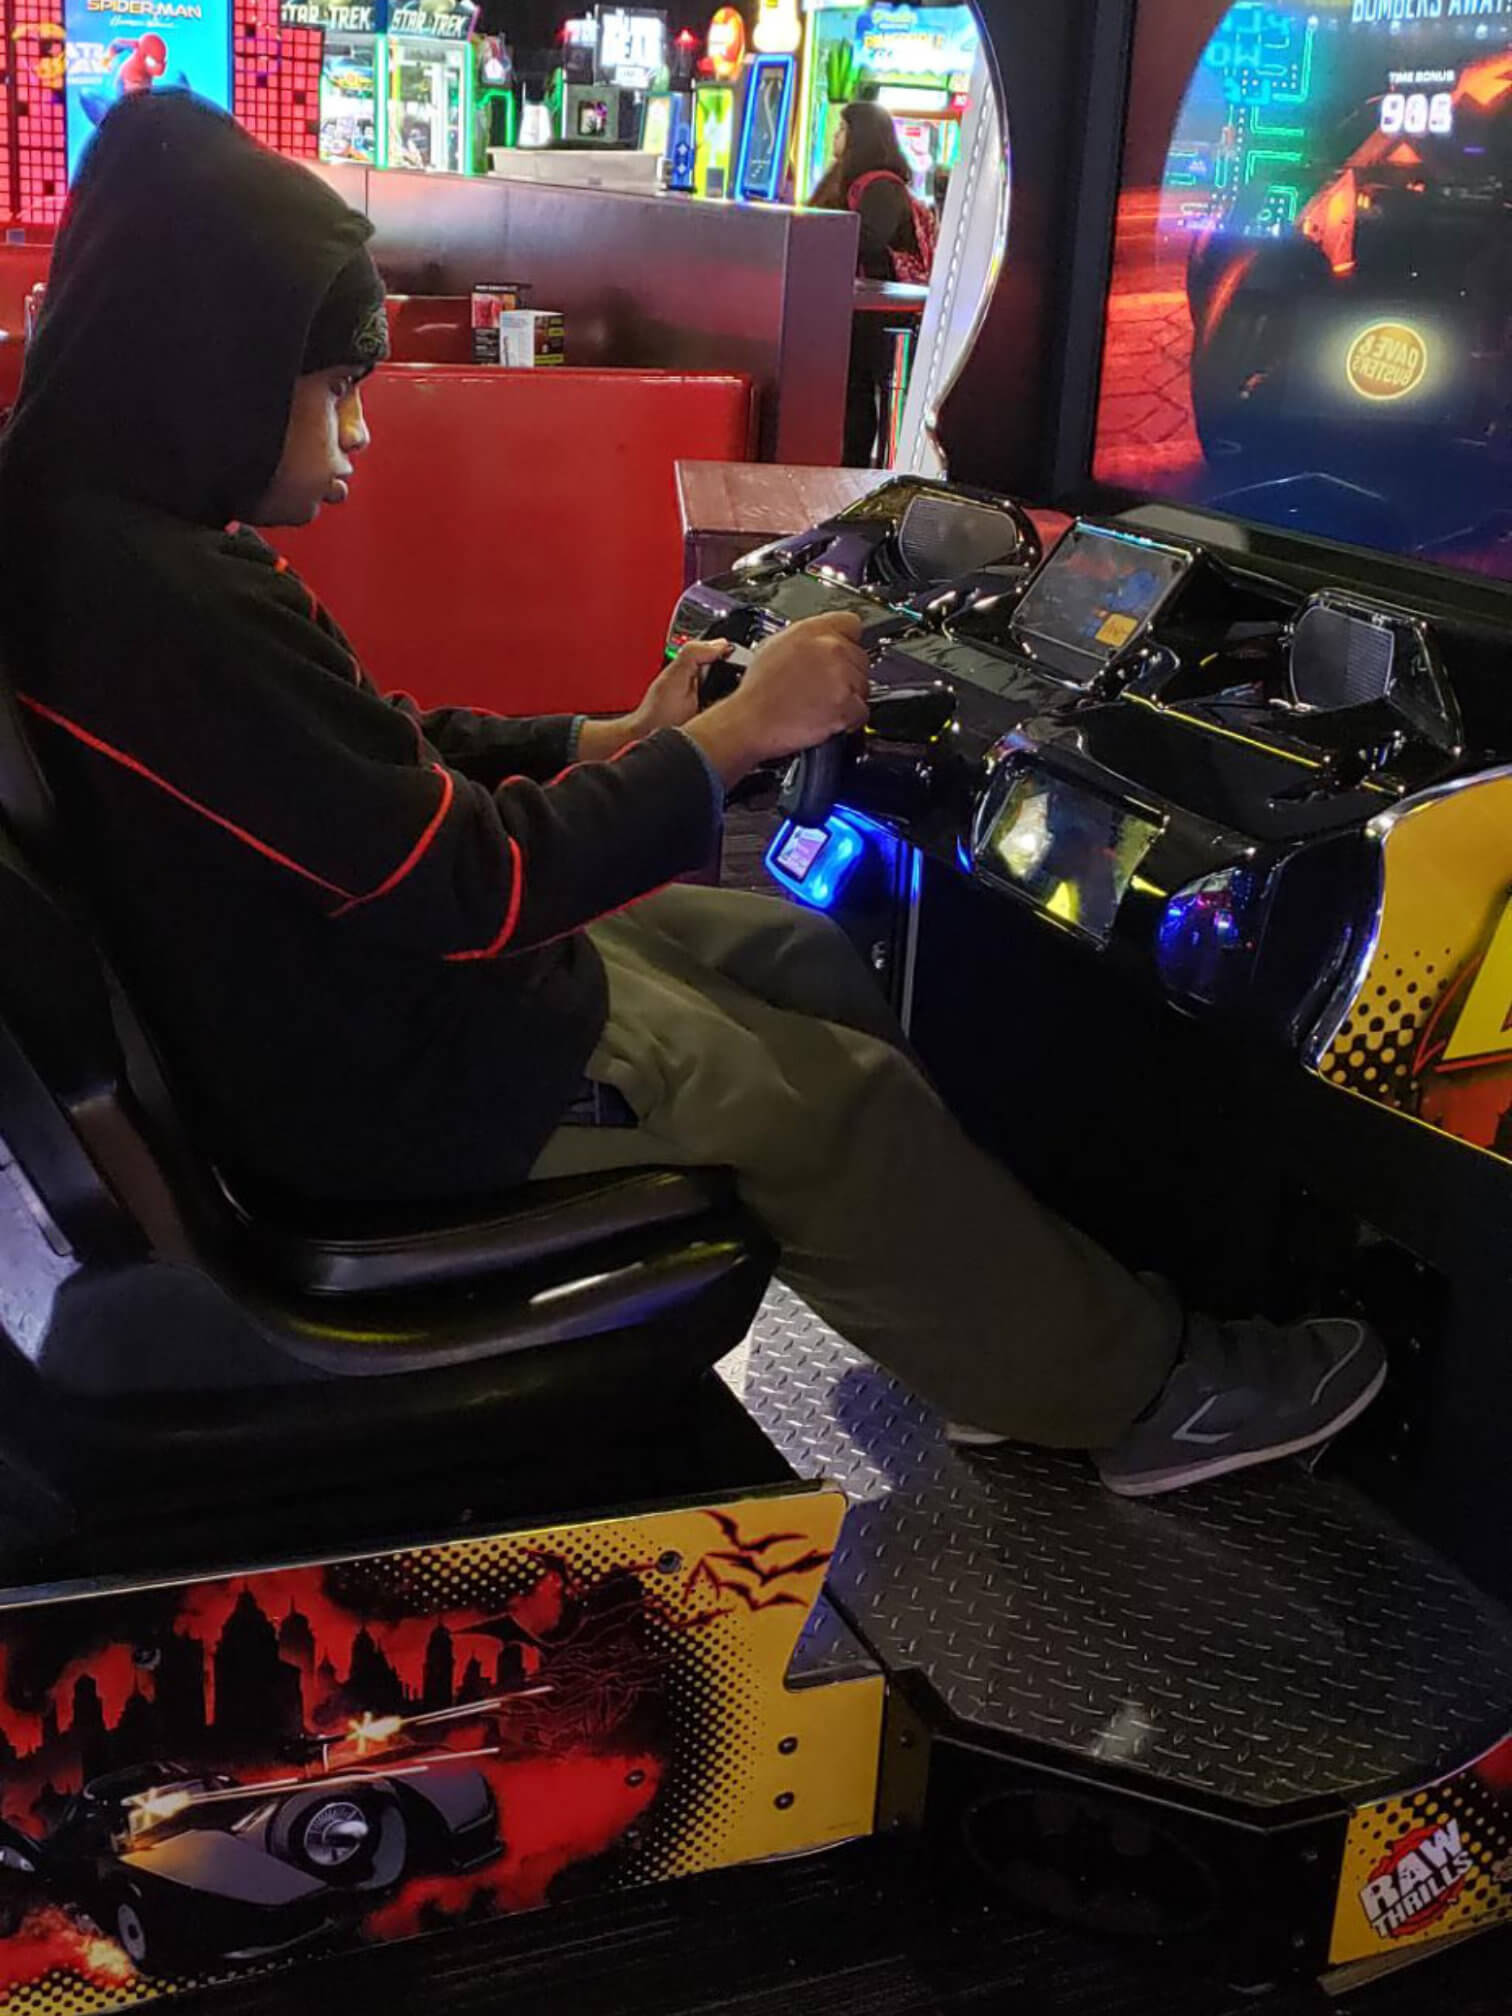 boy playing arcade game